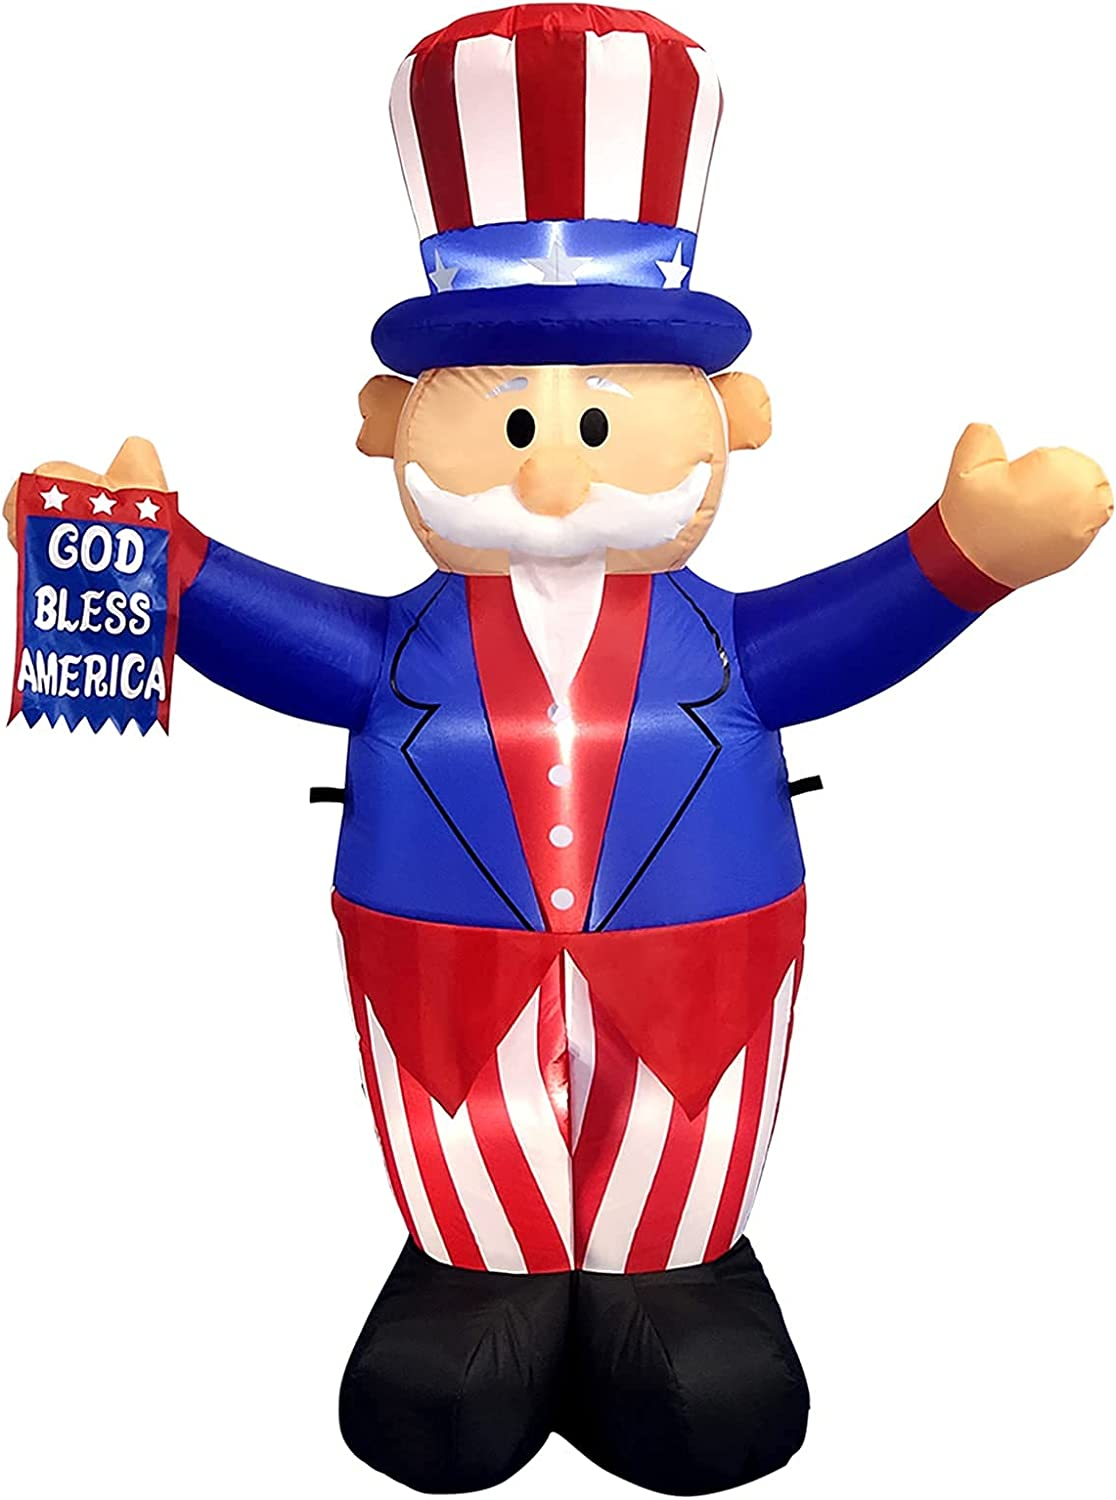 Kyerivs 6 ft Tall Patriotic Independence Decoration J New Special sale item item of Day 4th